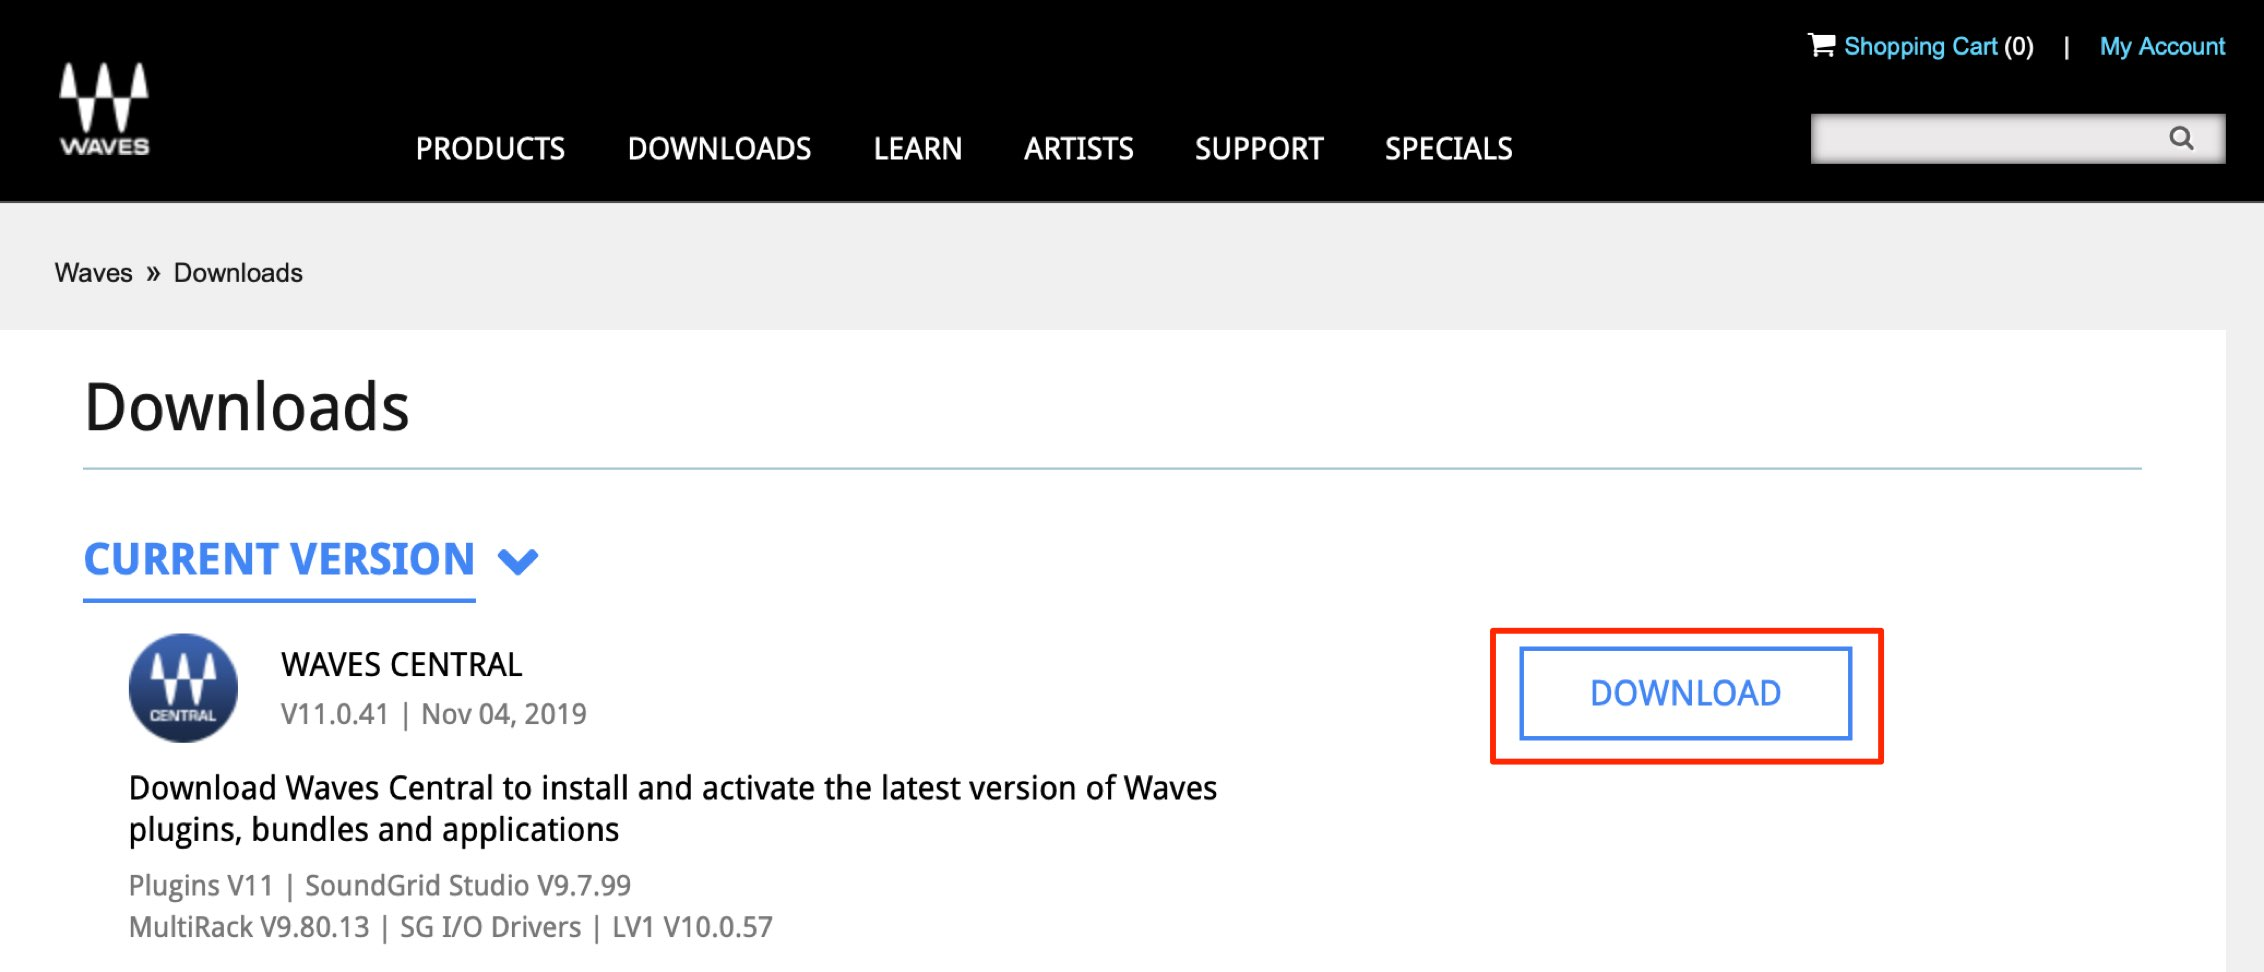 Waves V11 Install/Register Plugins (Upgrading Products) How